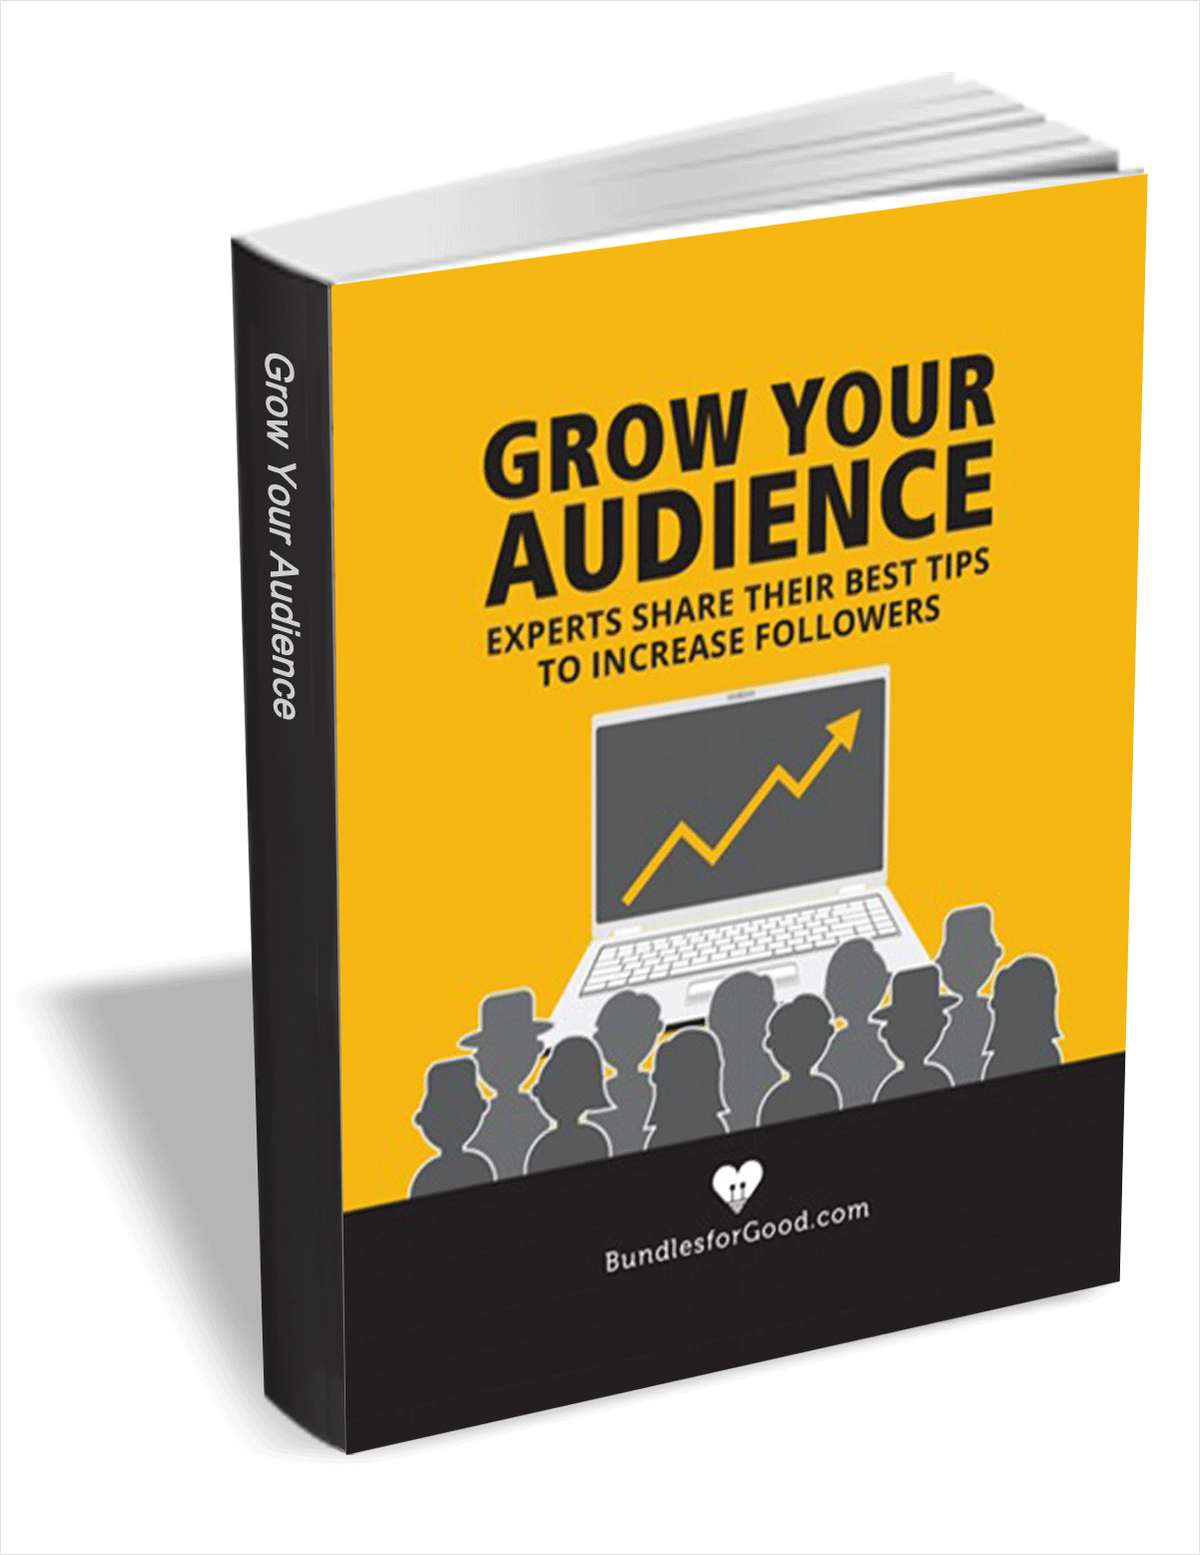 Grow Your Audience - Experts Share Their Best Tips to Increase Followers